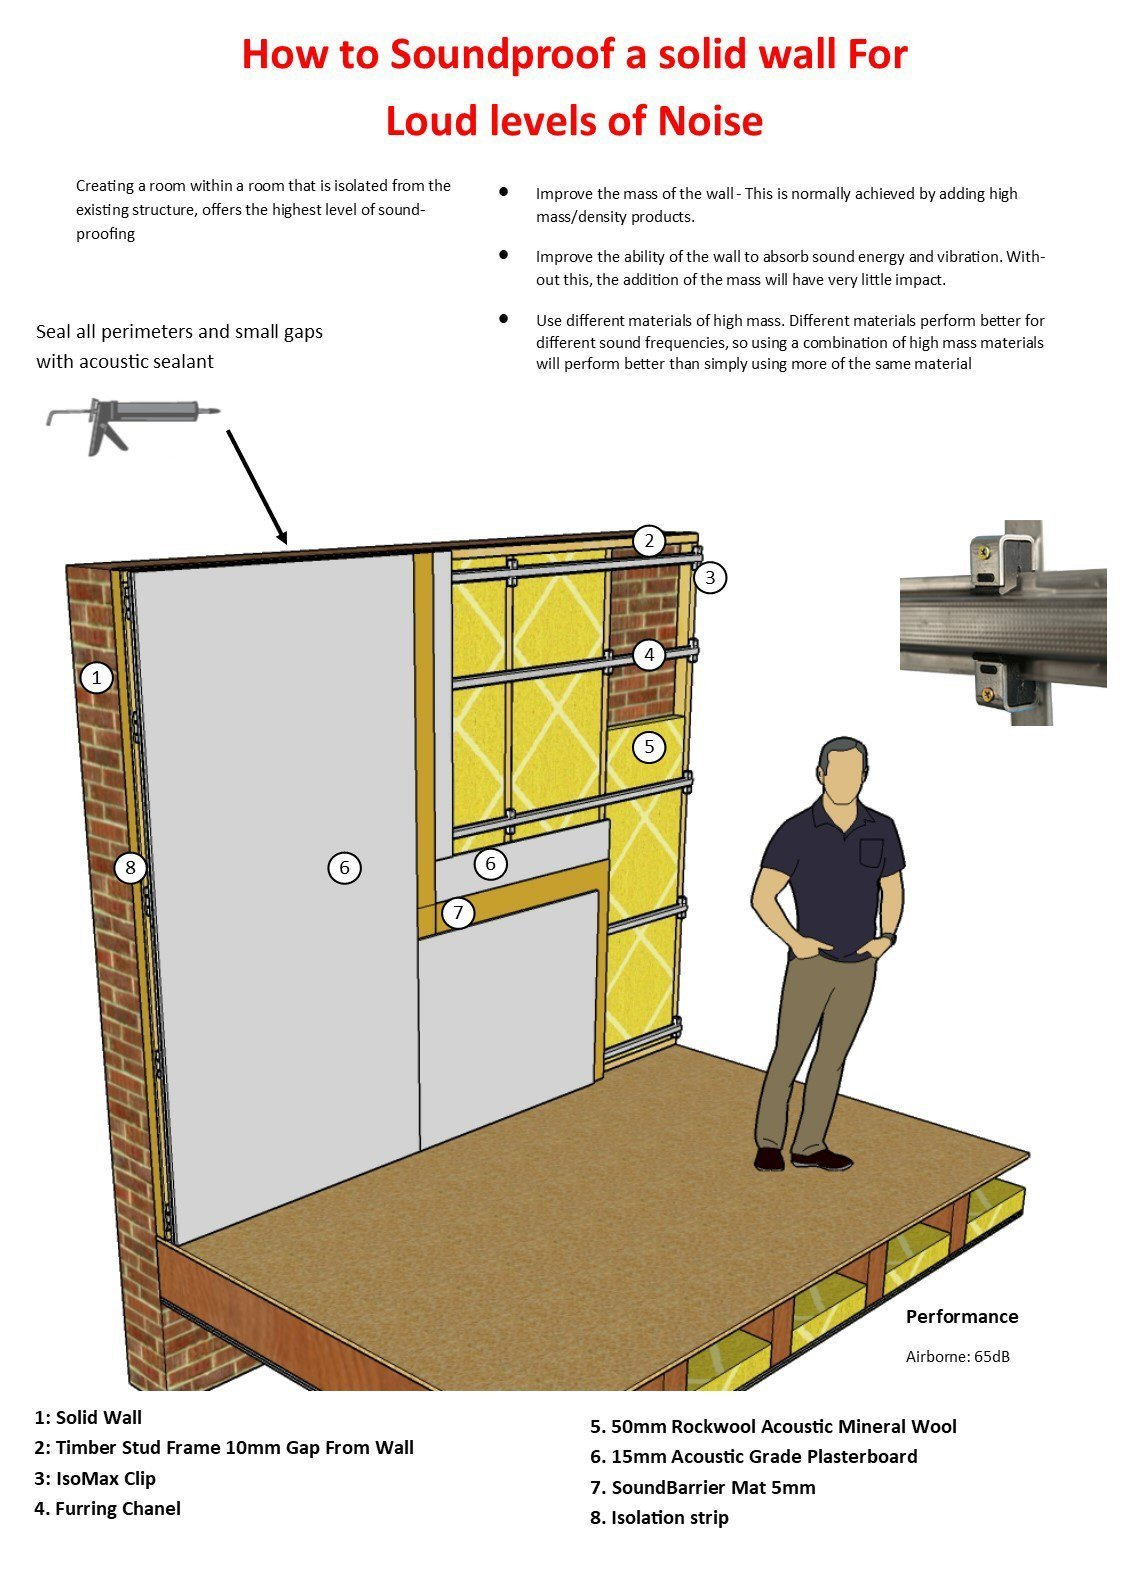 How to soundproof a wall against noisy neighbours Soundproof a bedroom wall noisy neighbours